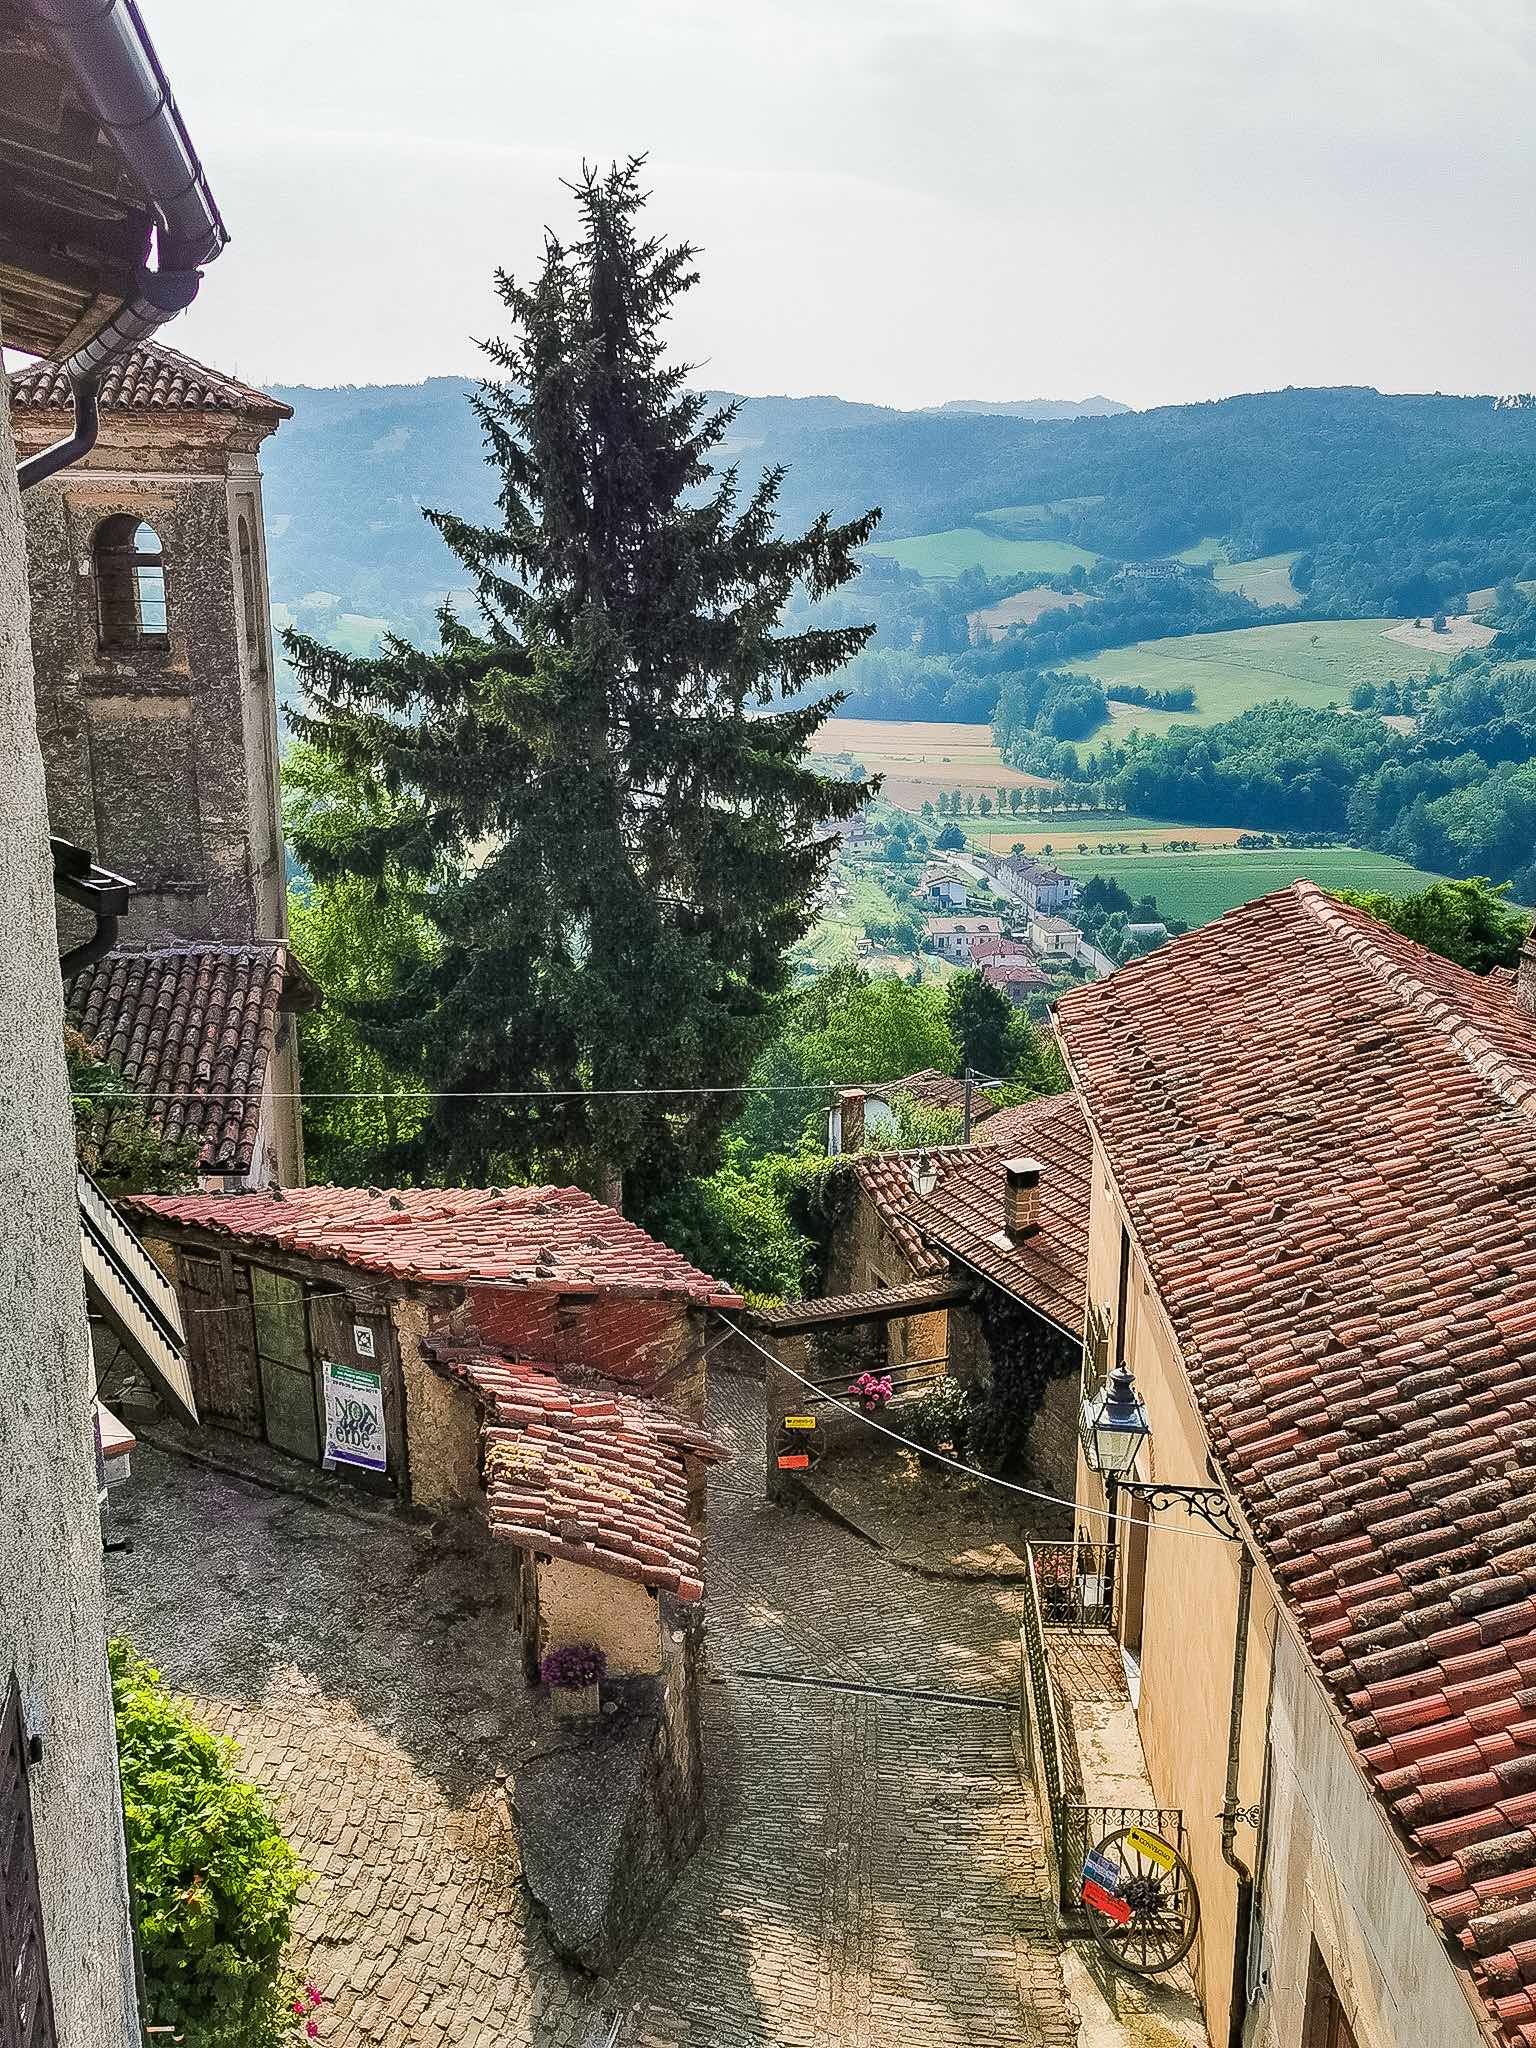 The village of Sale San Giovanni in Piedmont